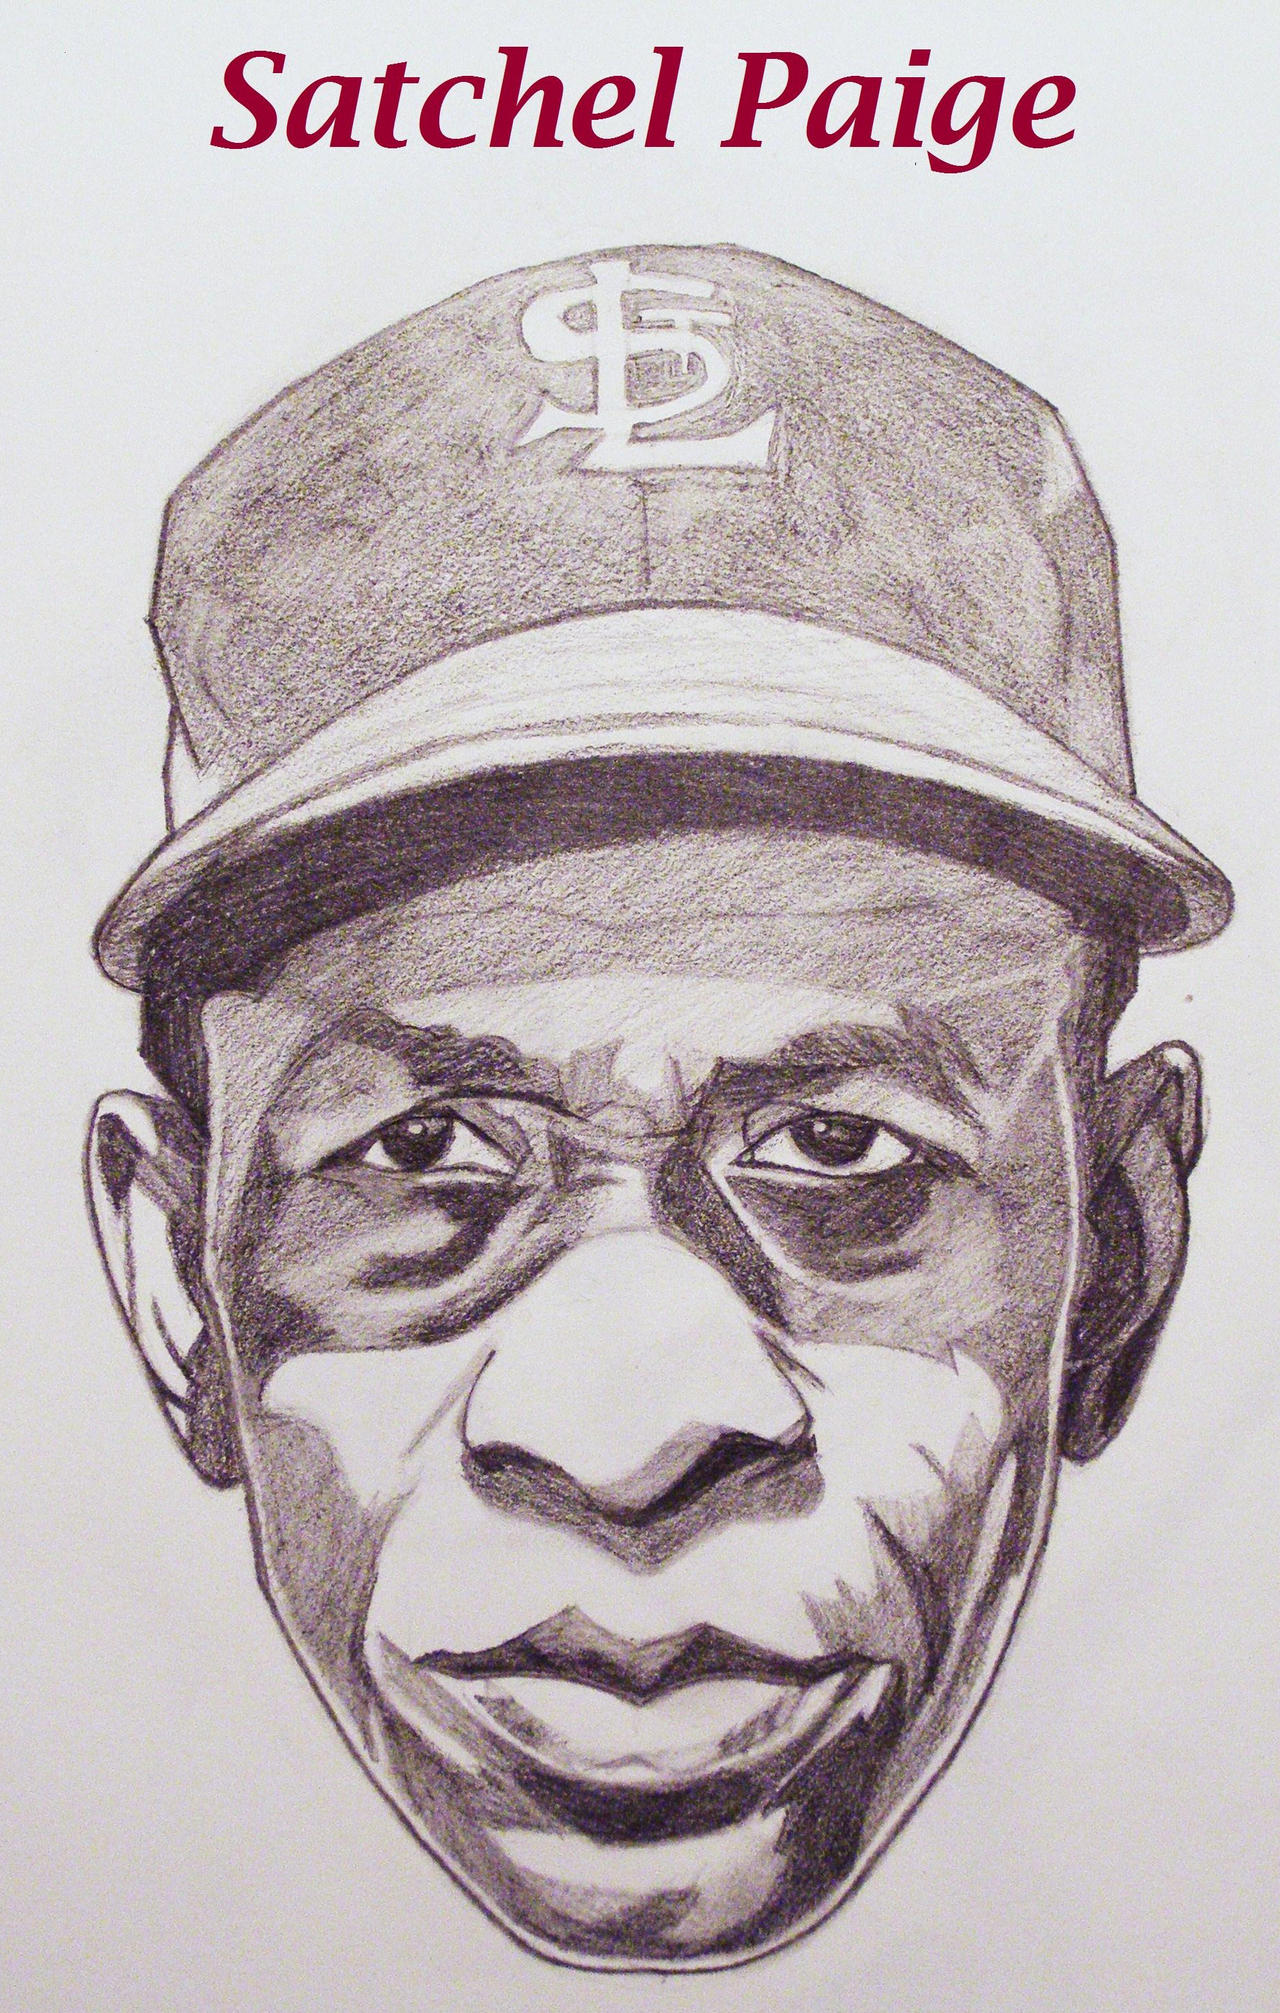 satchel paige essay Looking at artifacts, thinking about history by steven lubar and kathleen kendrick  satchel paige, oscar charleston, and other negro league stars who,.